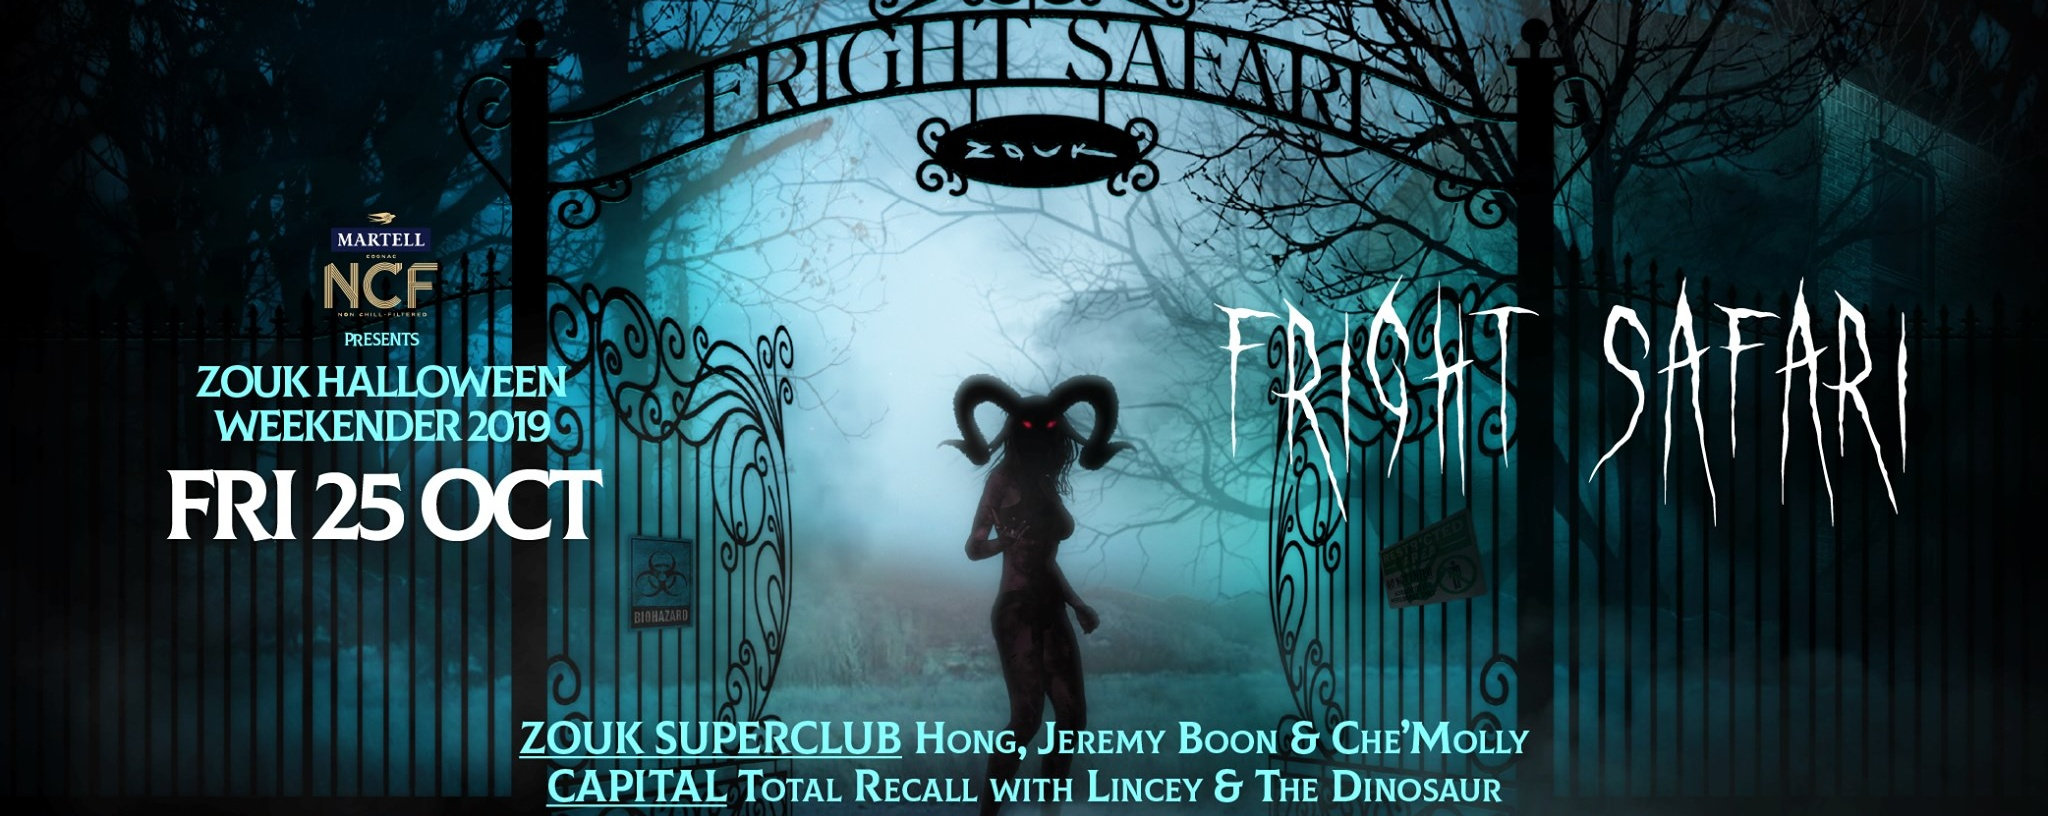 MARTELL NCF PRESENTS FRIGHT SAFARI FT. TOTAL RECALL WITH LINCEY & THE DINOSAUR